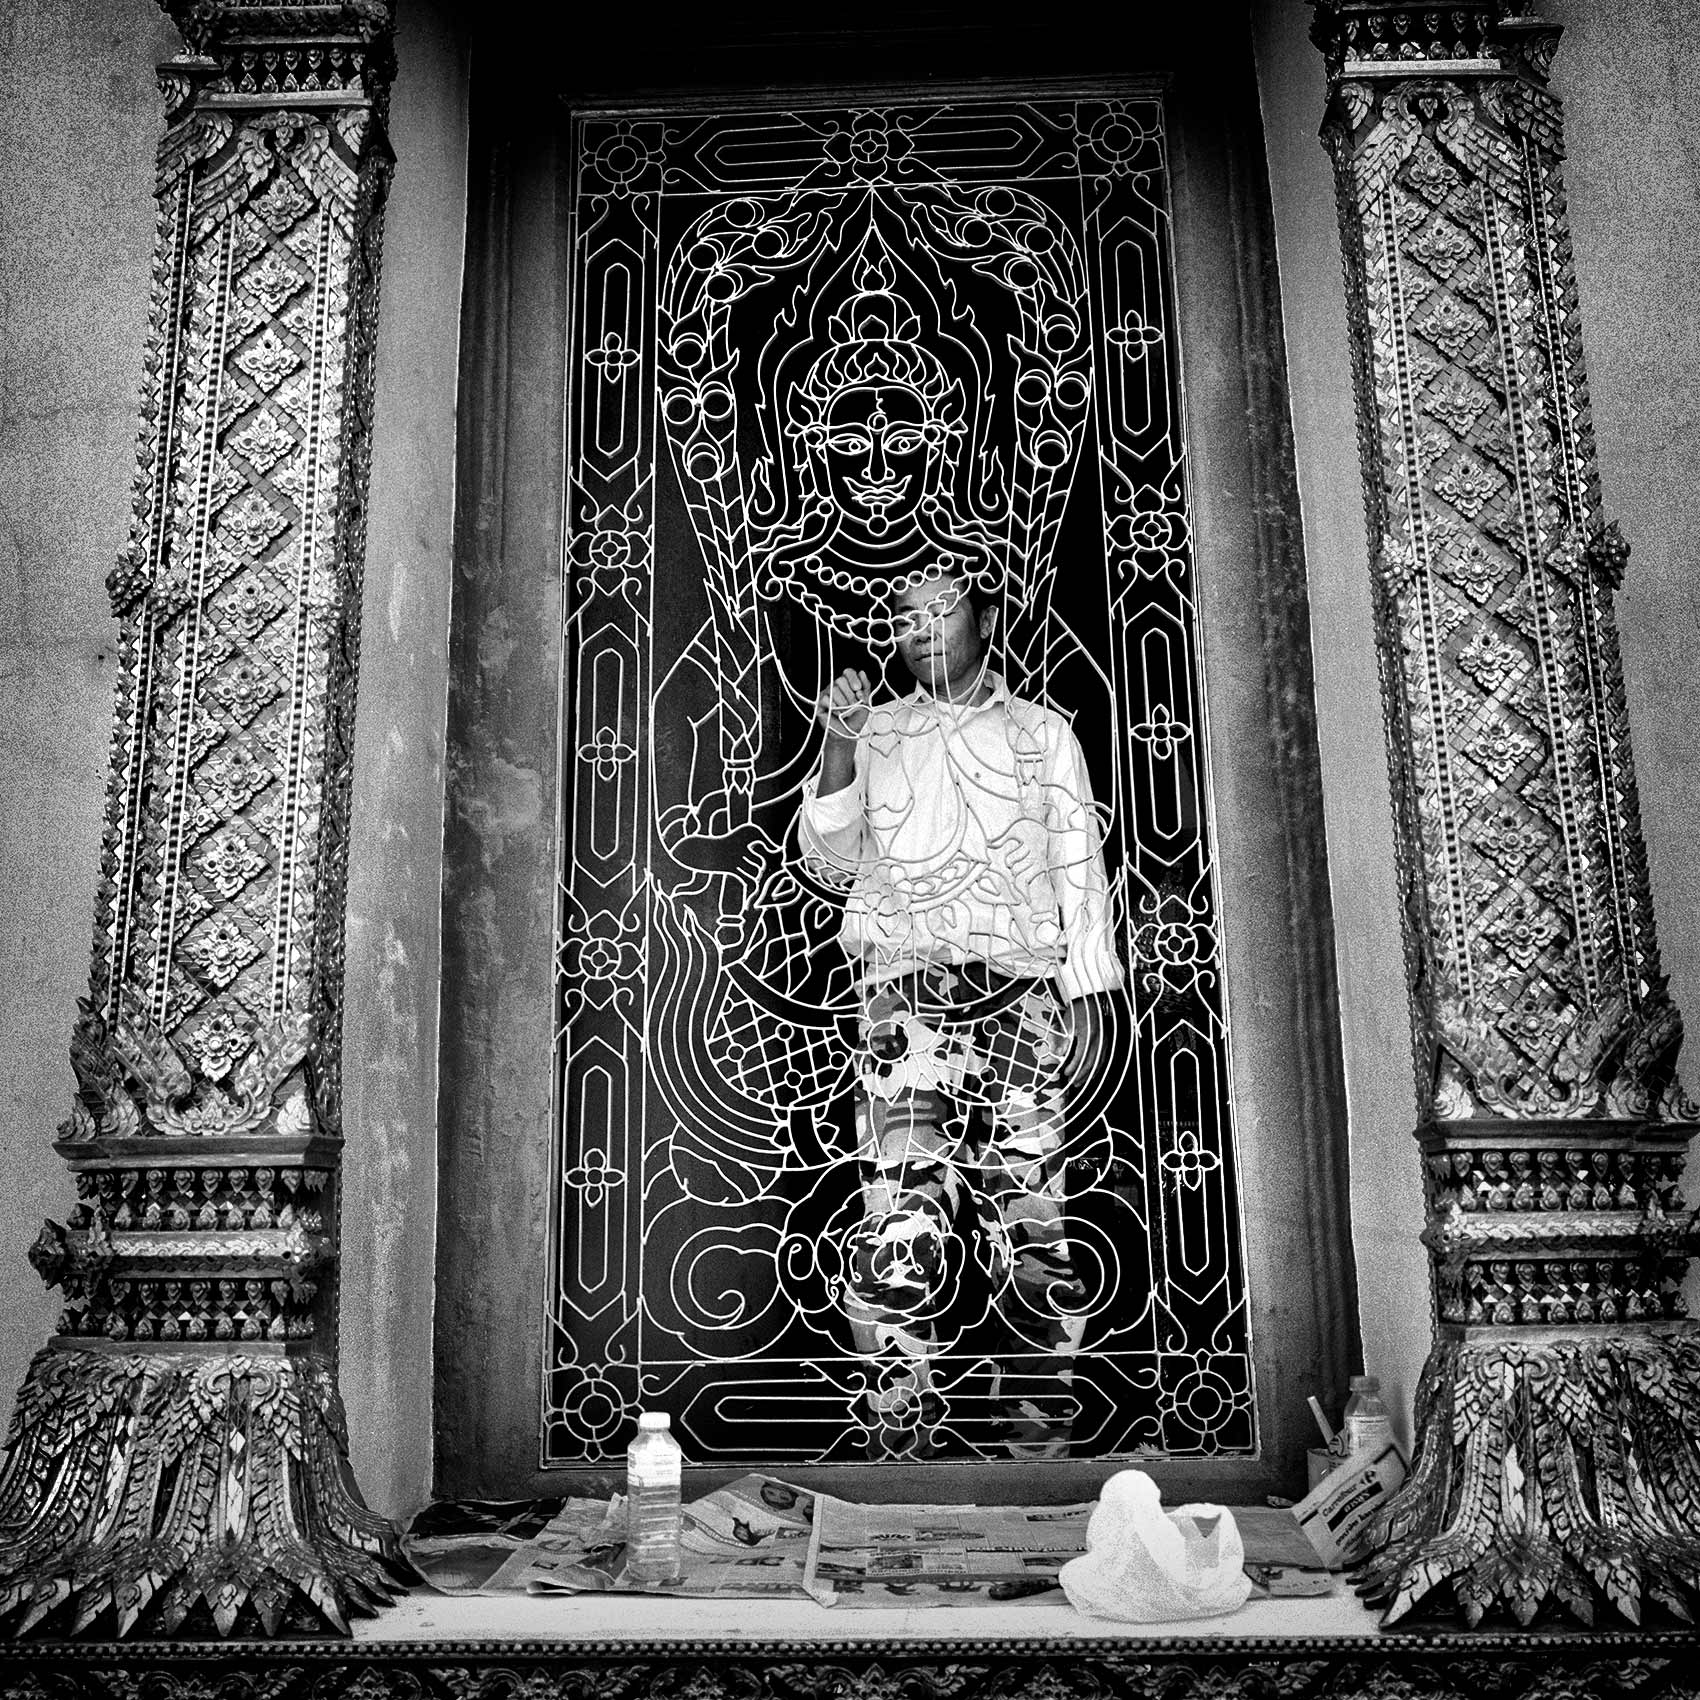 a-man-pauses-as-he-paints-an-gold-iron-gate-at-a-buddhist-temple-in-bangkok-thailand